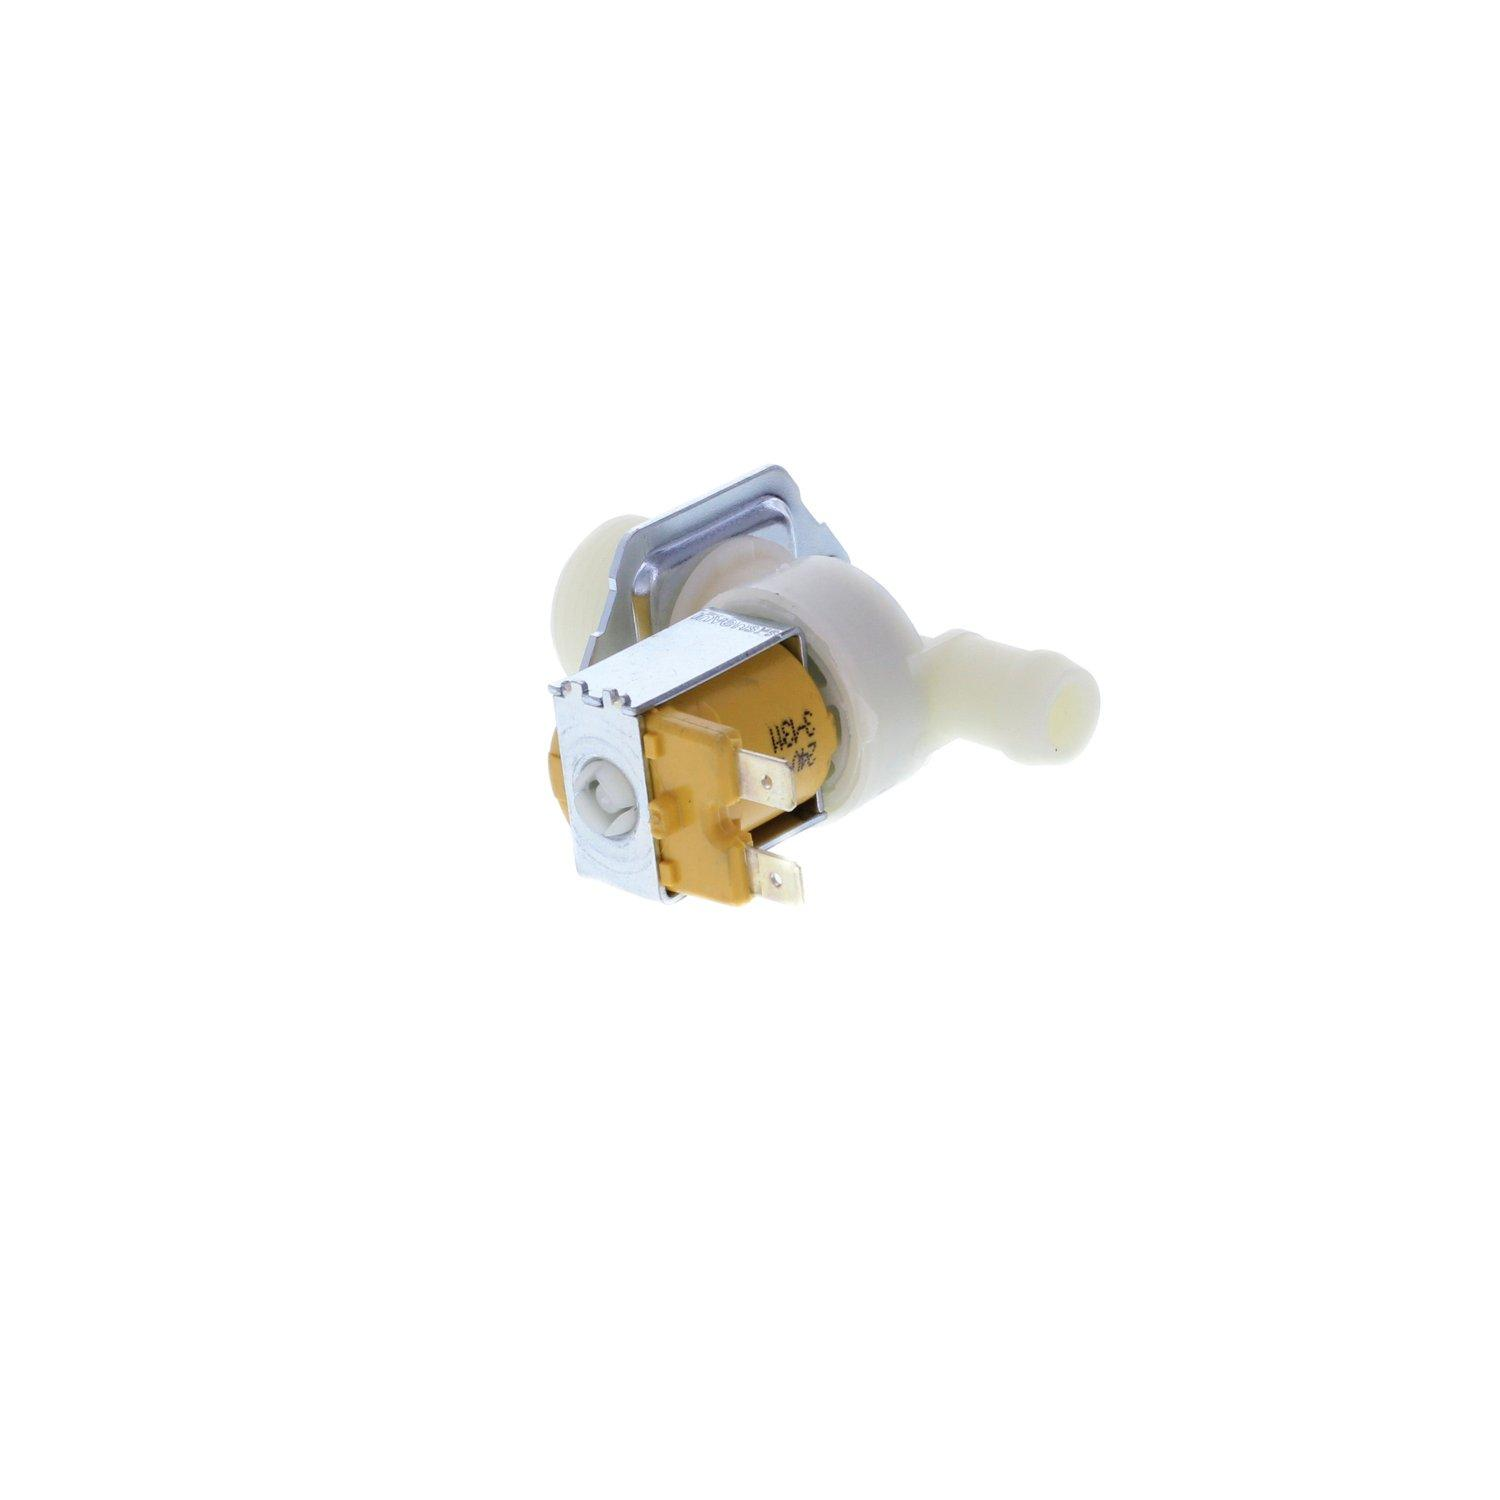 1//4 NPT 8 mm OD MSC 8-N02-10PK MettleAir MSC 8-N02 Push to Connect Meter Out Male Speed Control Fitting Pack of 10 8 mm OD Pack of 10 1//4 NPT